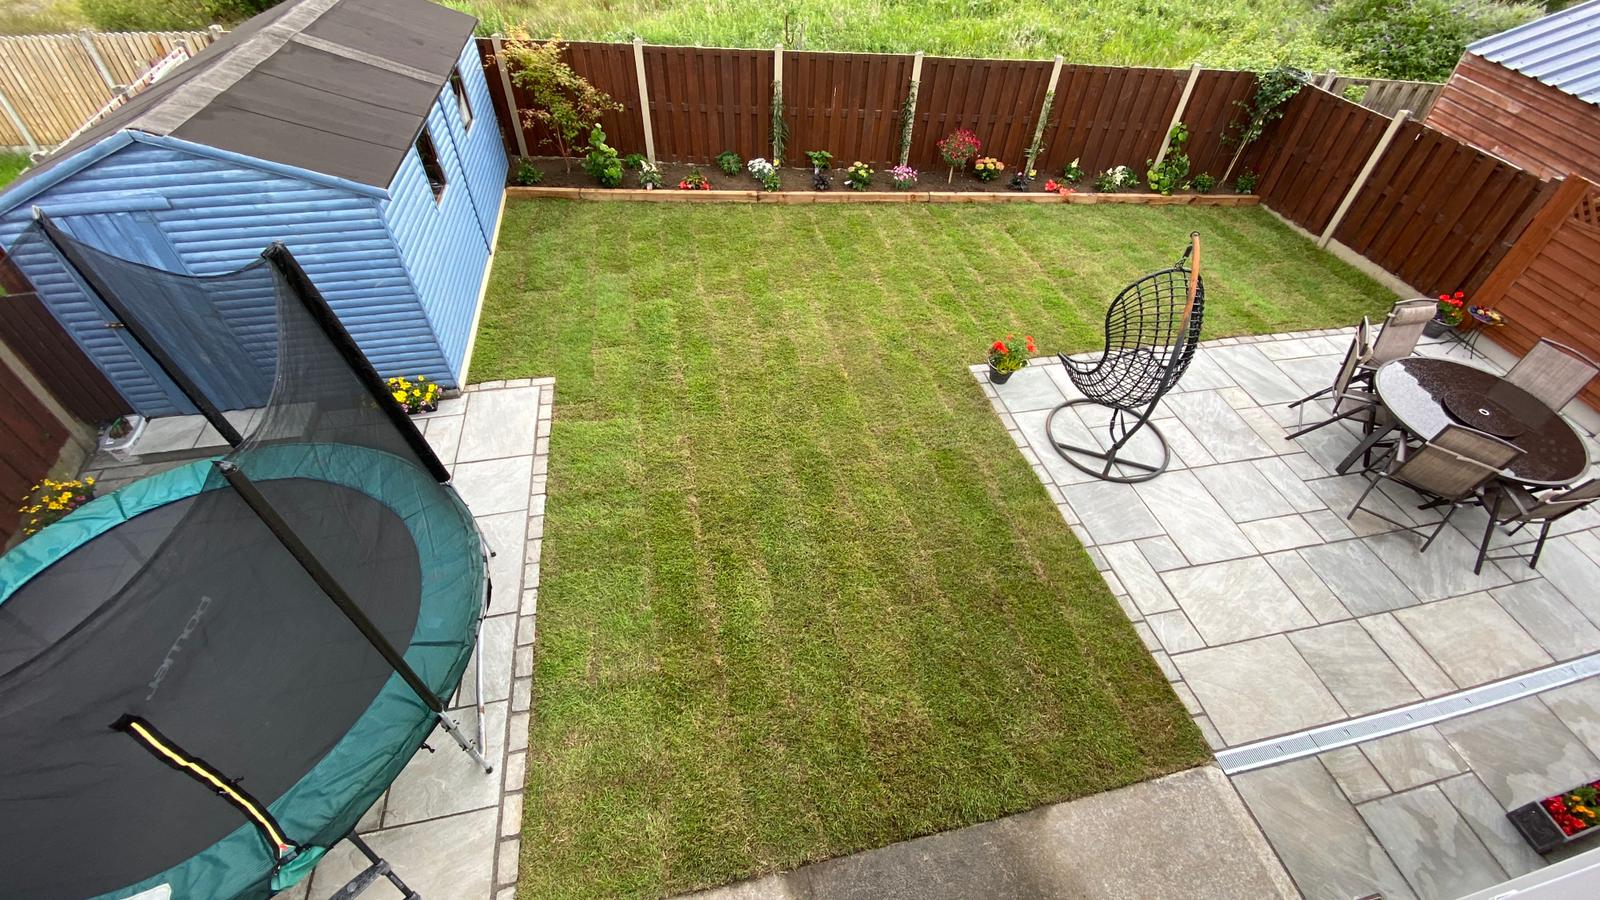 Garden transformation in Oranmore. After